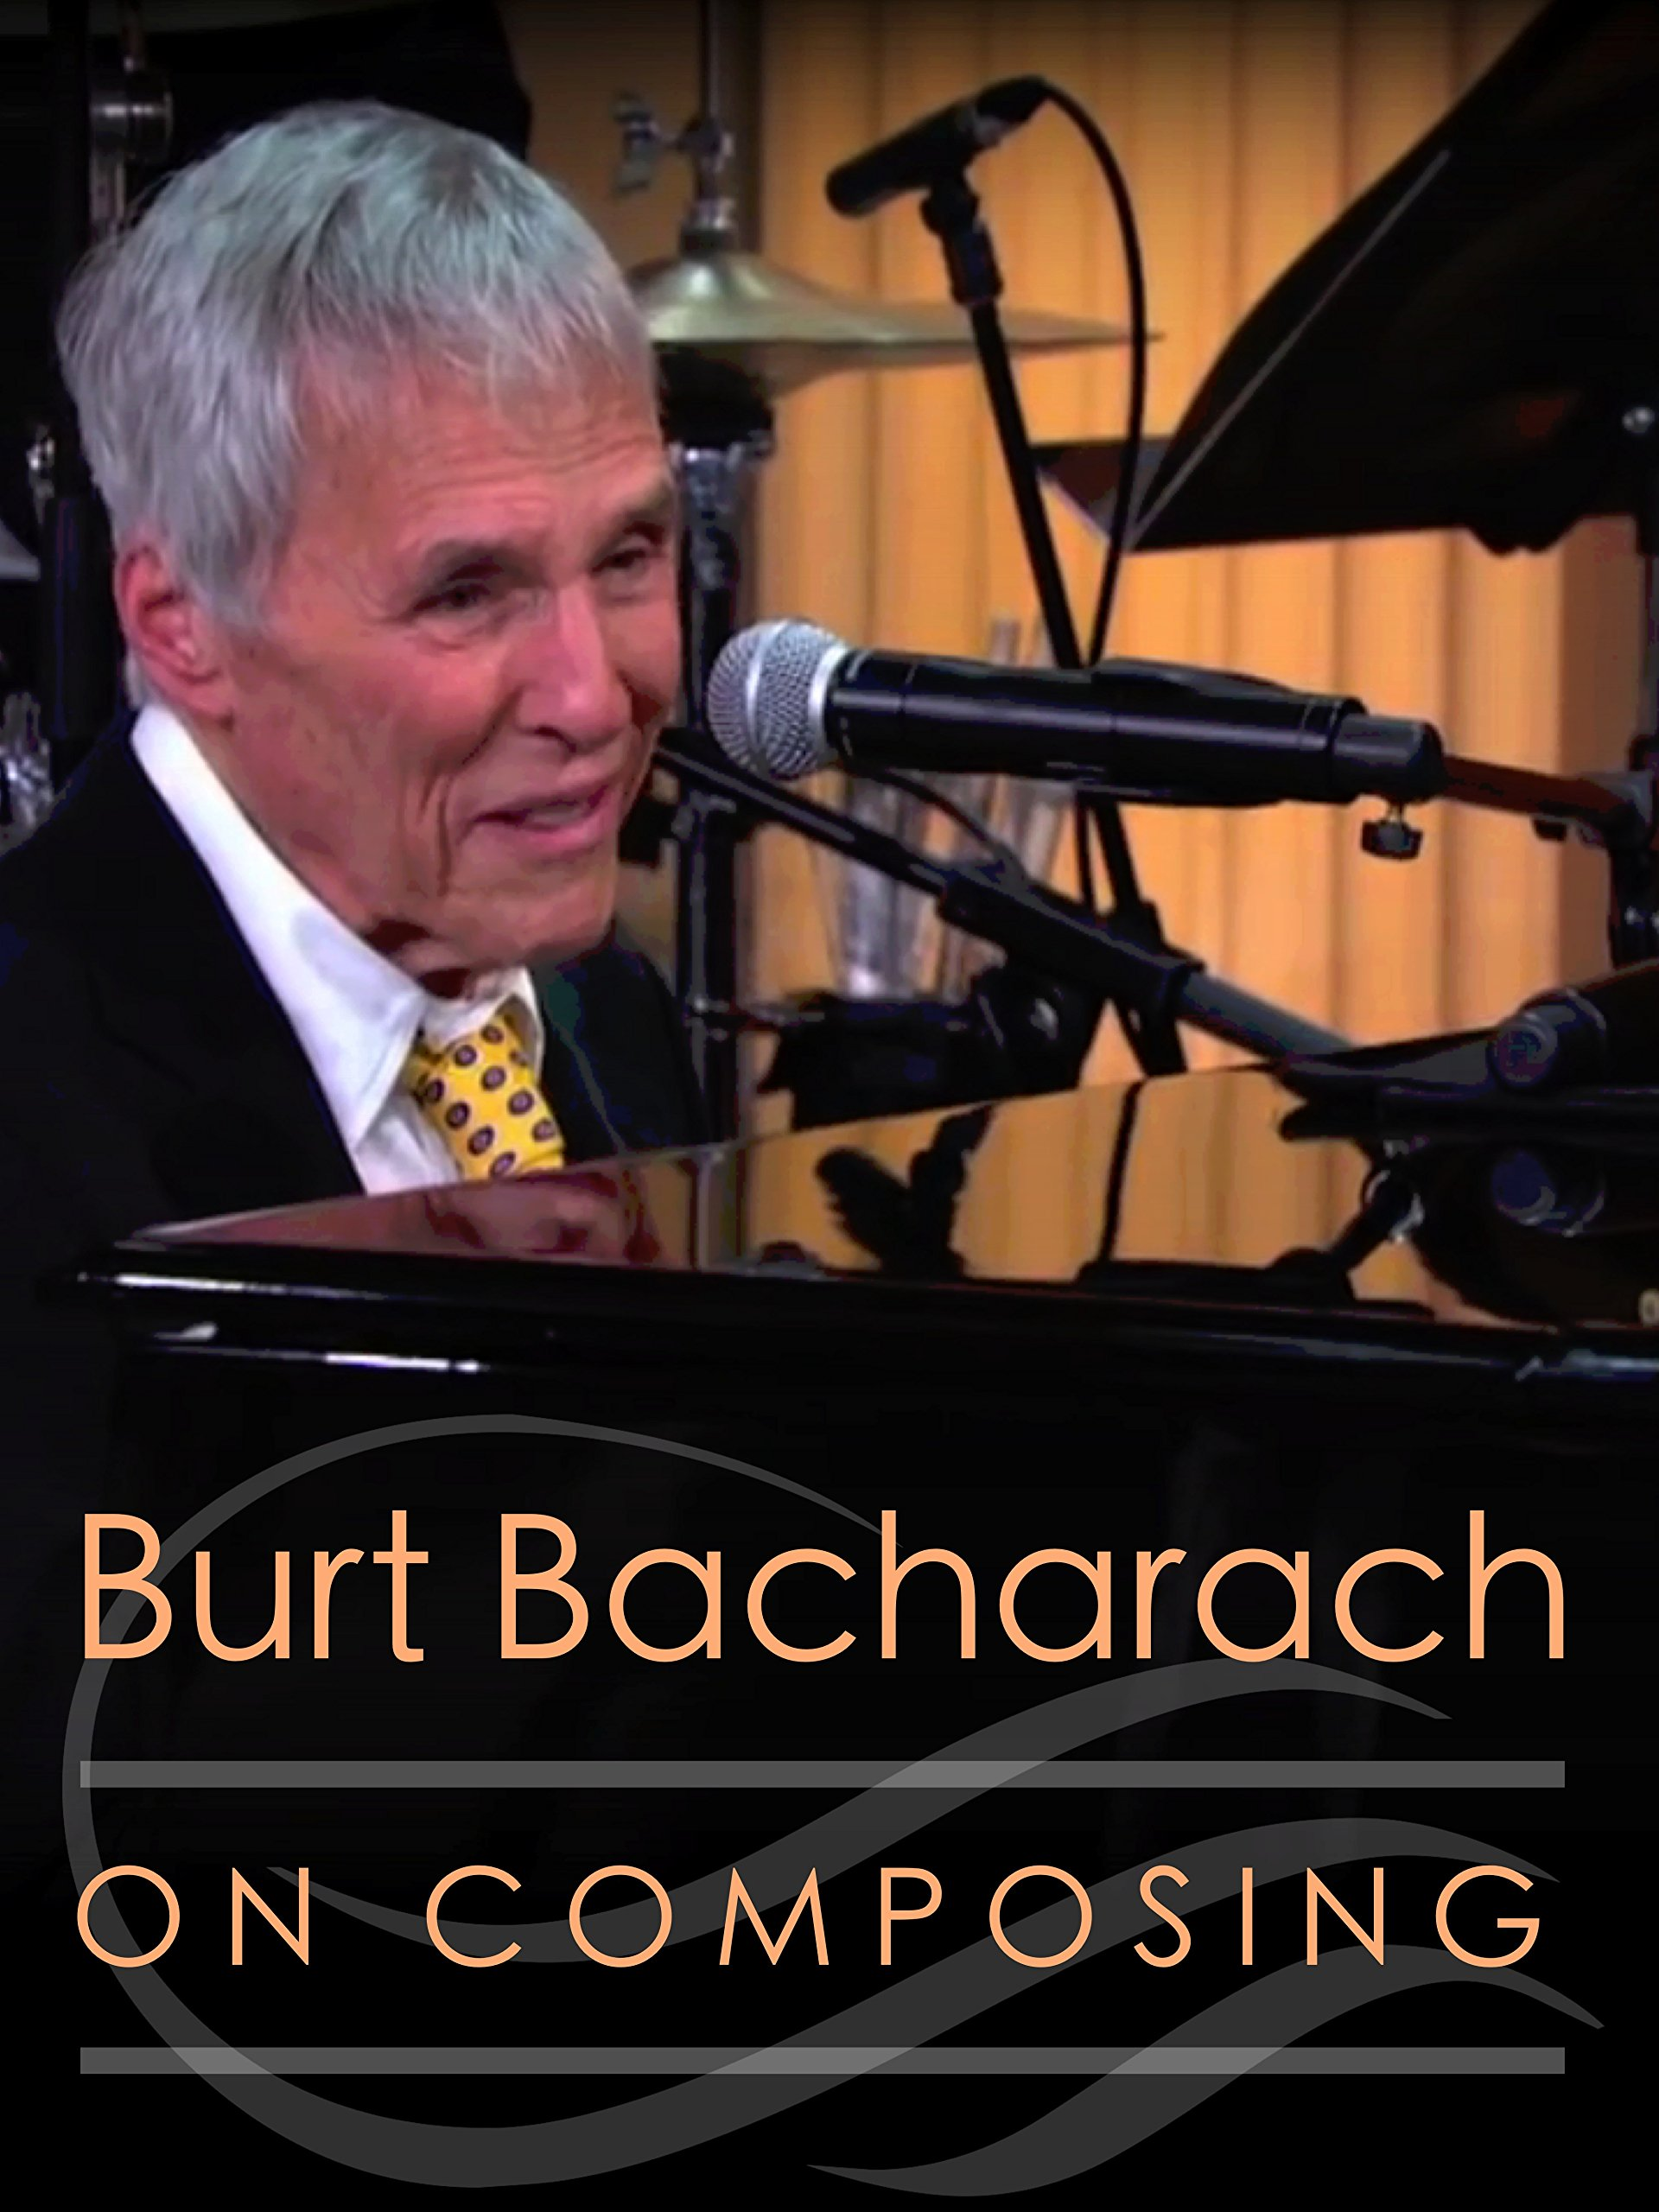 Burt Bacharach: On Composing